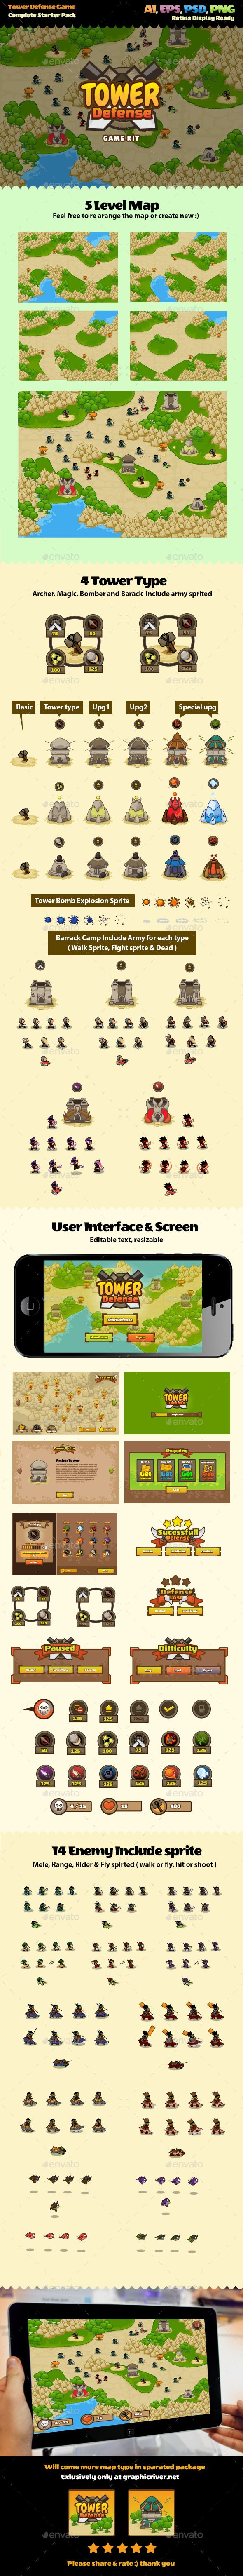 Tower Defense Game Kit